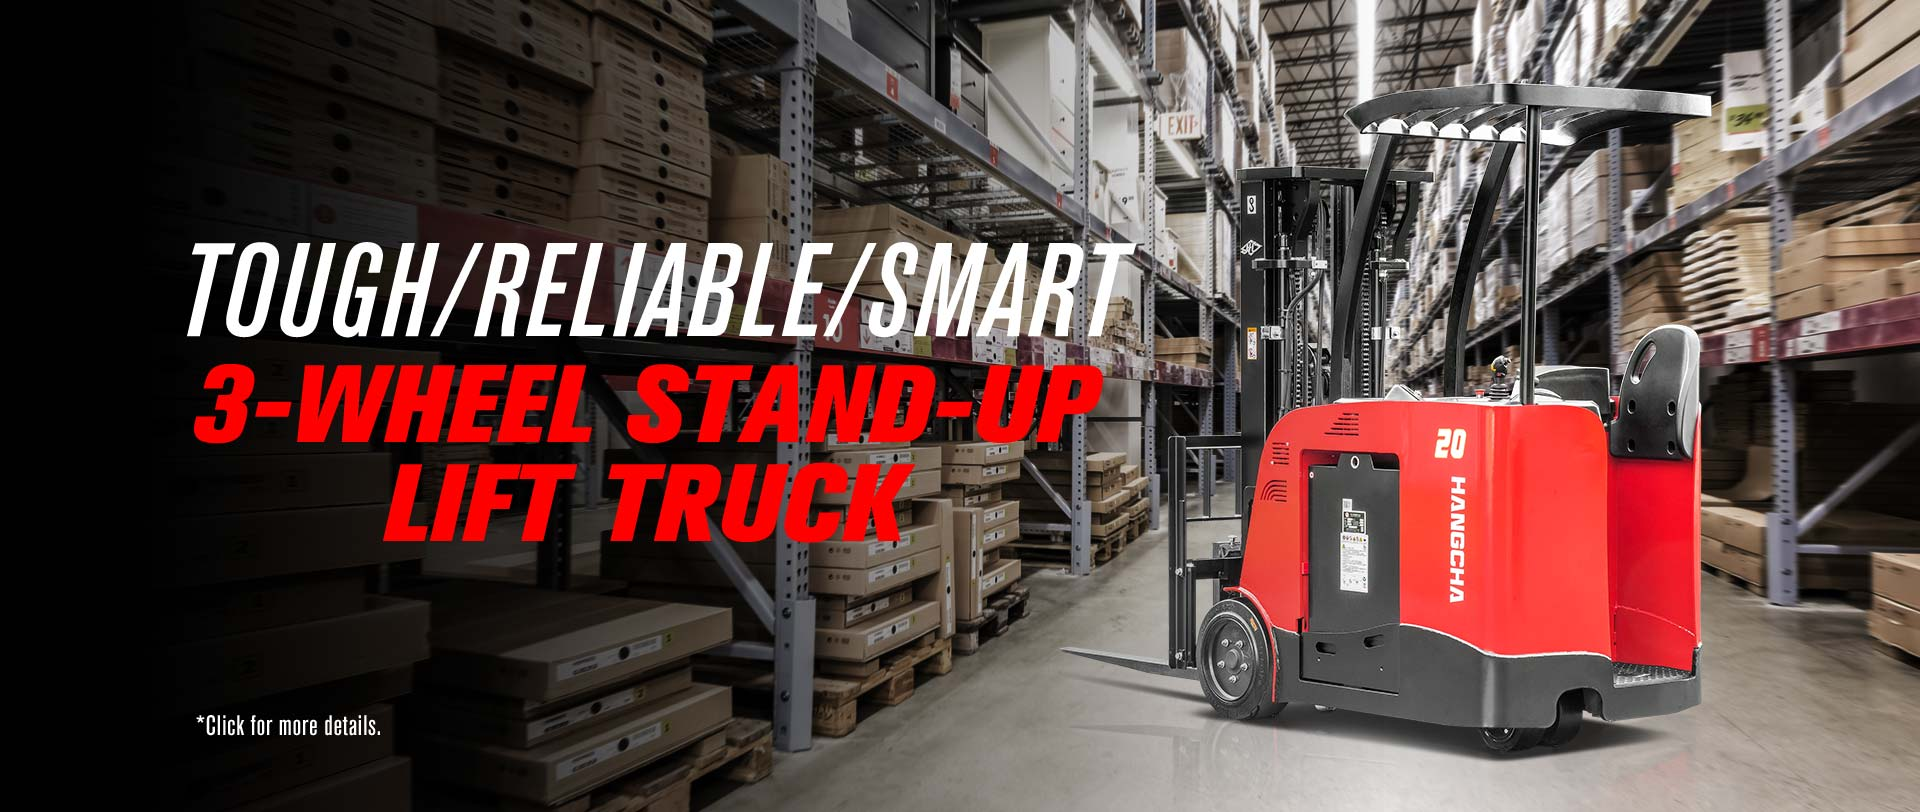 3-Wheel Stand-up Lift Truck